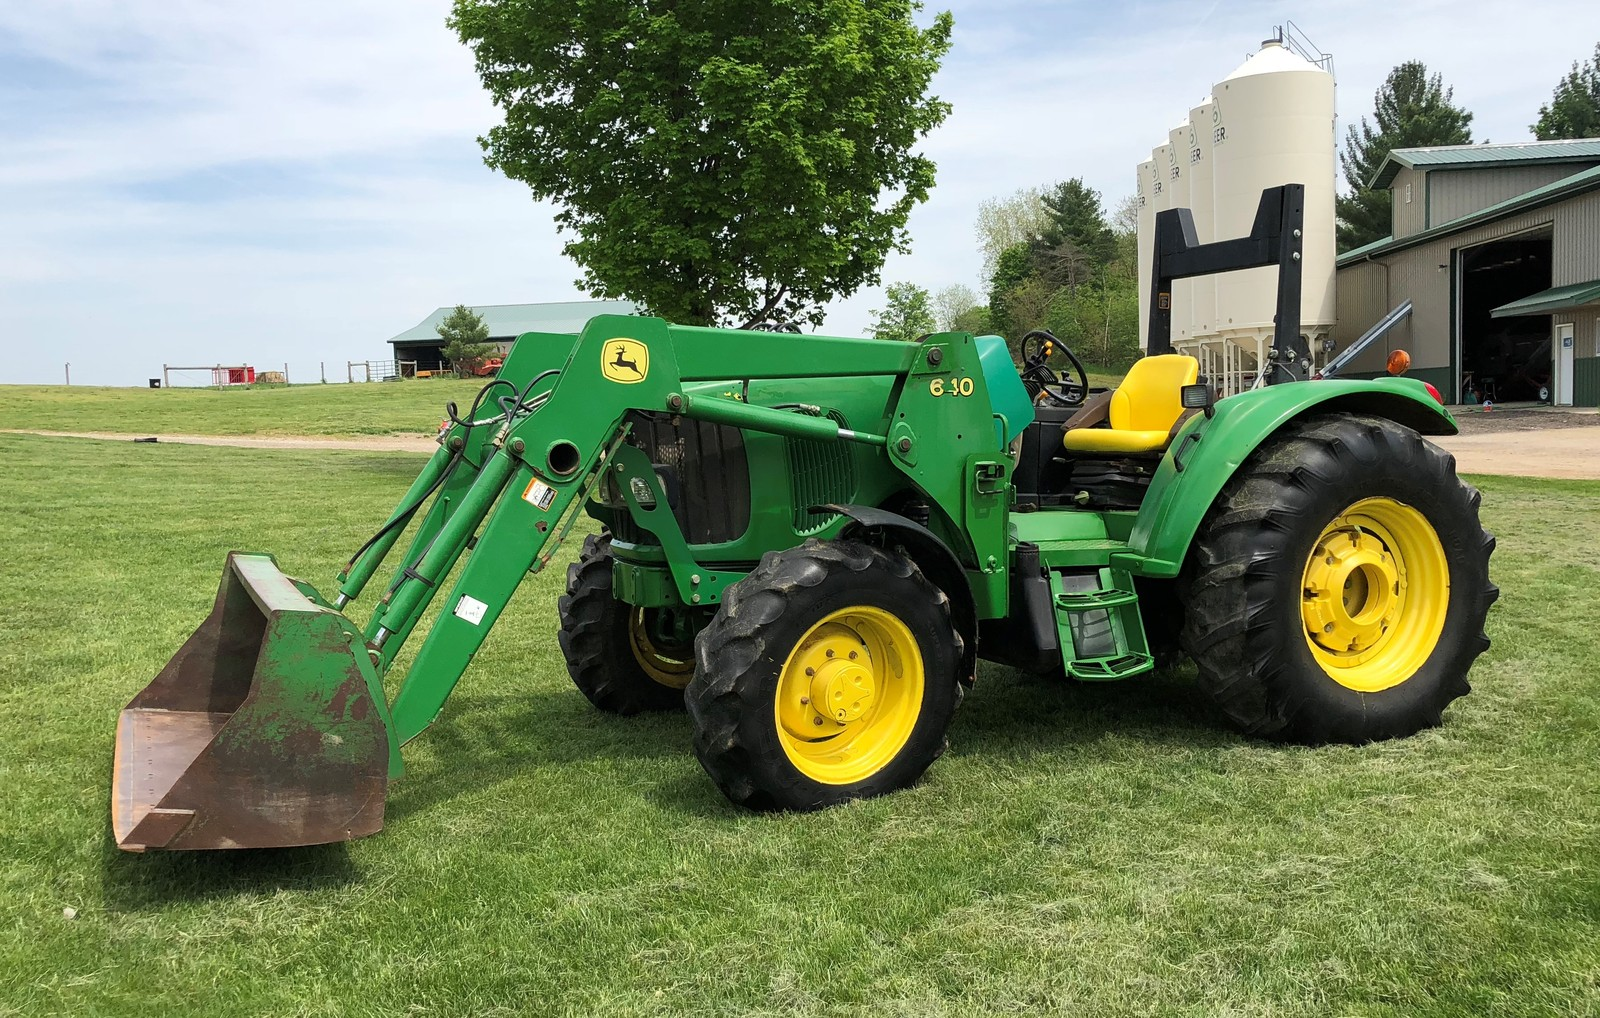 2002 John Deere Model 6220L For Sale in Athens, Michigan 49011